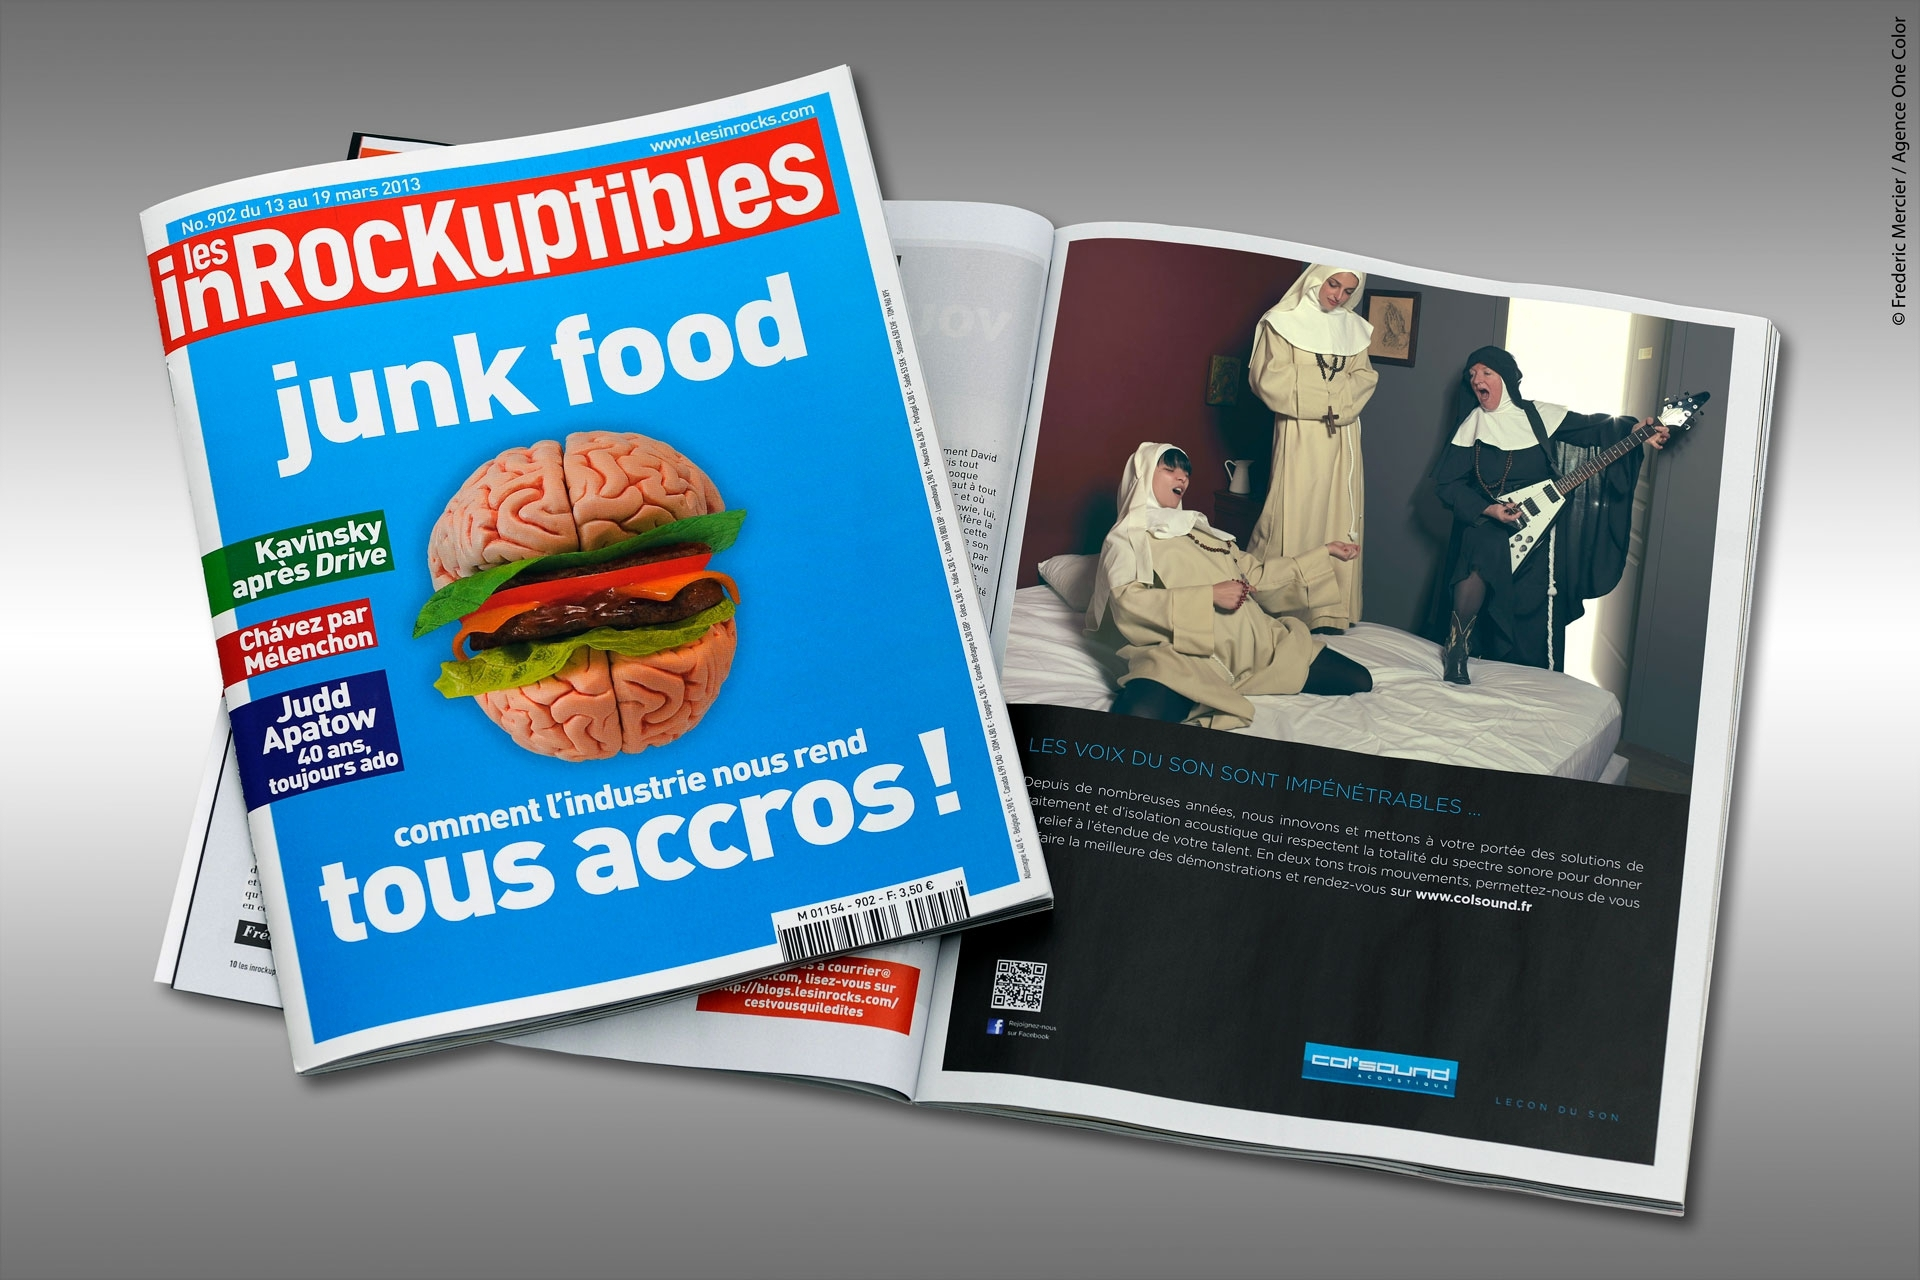 frederic mercier fashion photographer one color campagne publicitaire col sound parution les inrockuptibles inrock